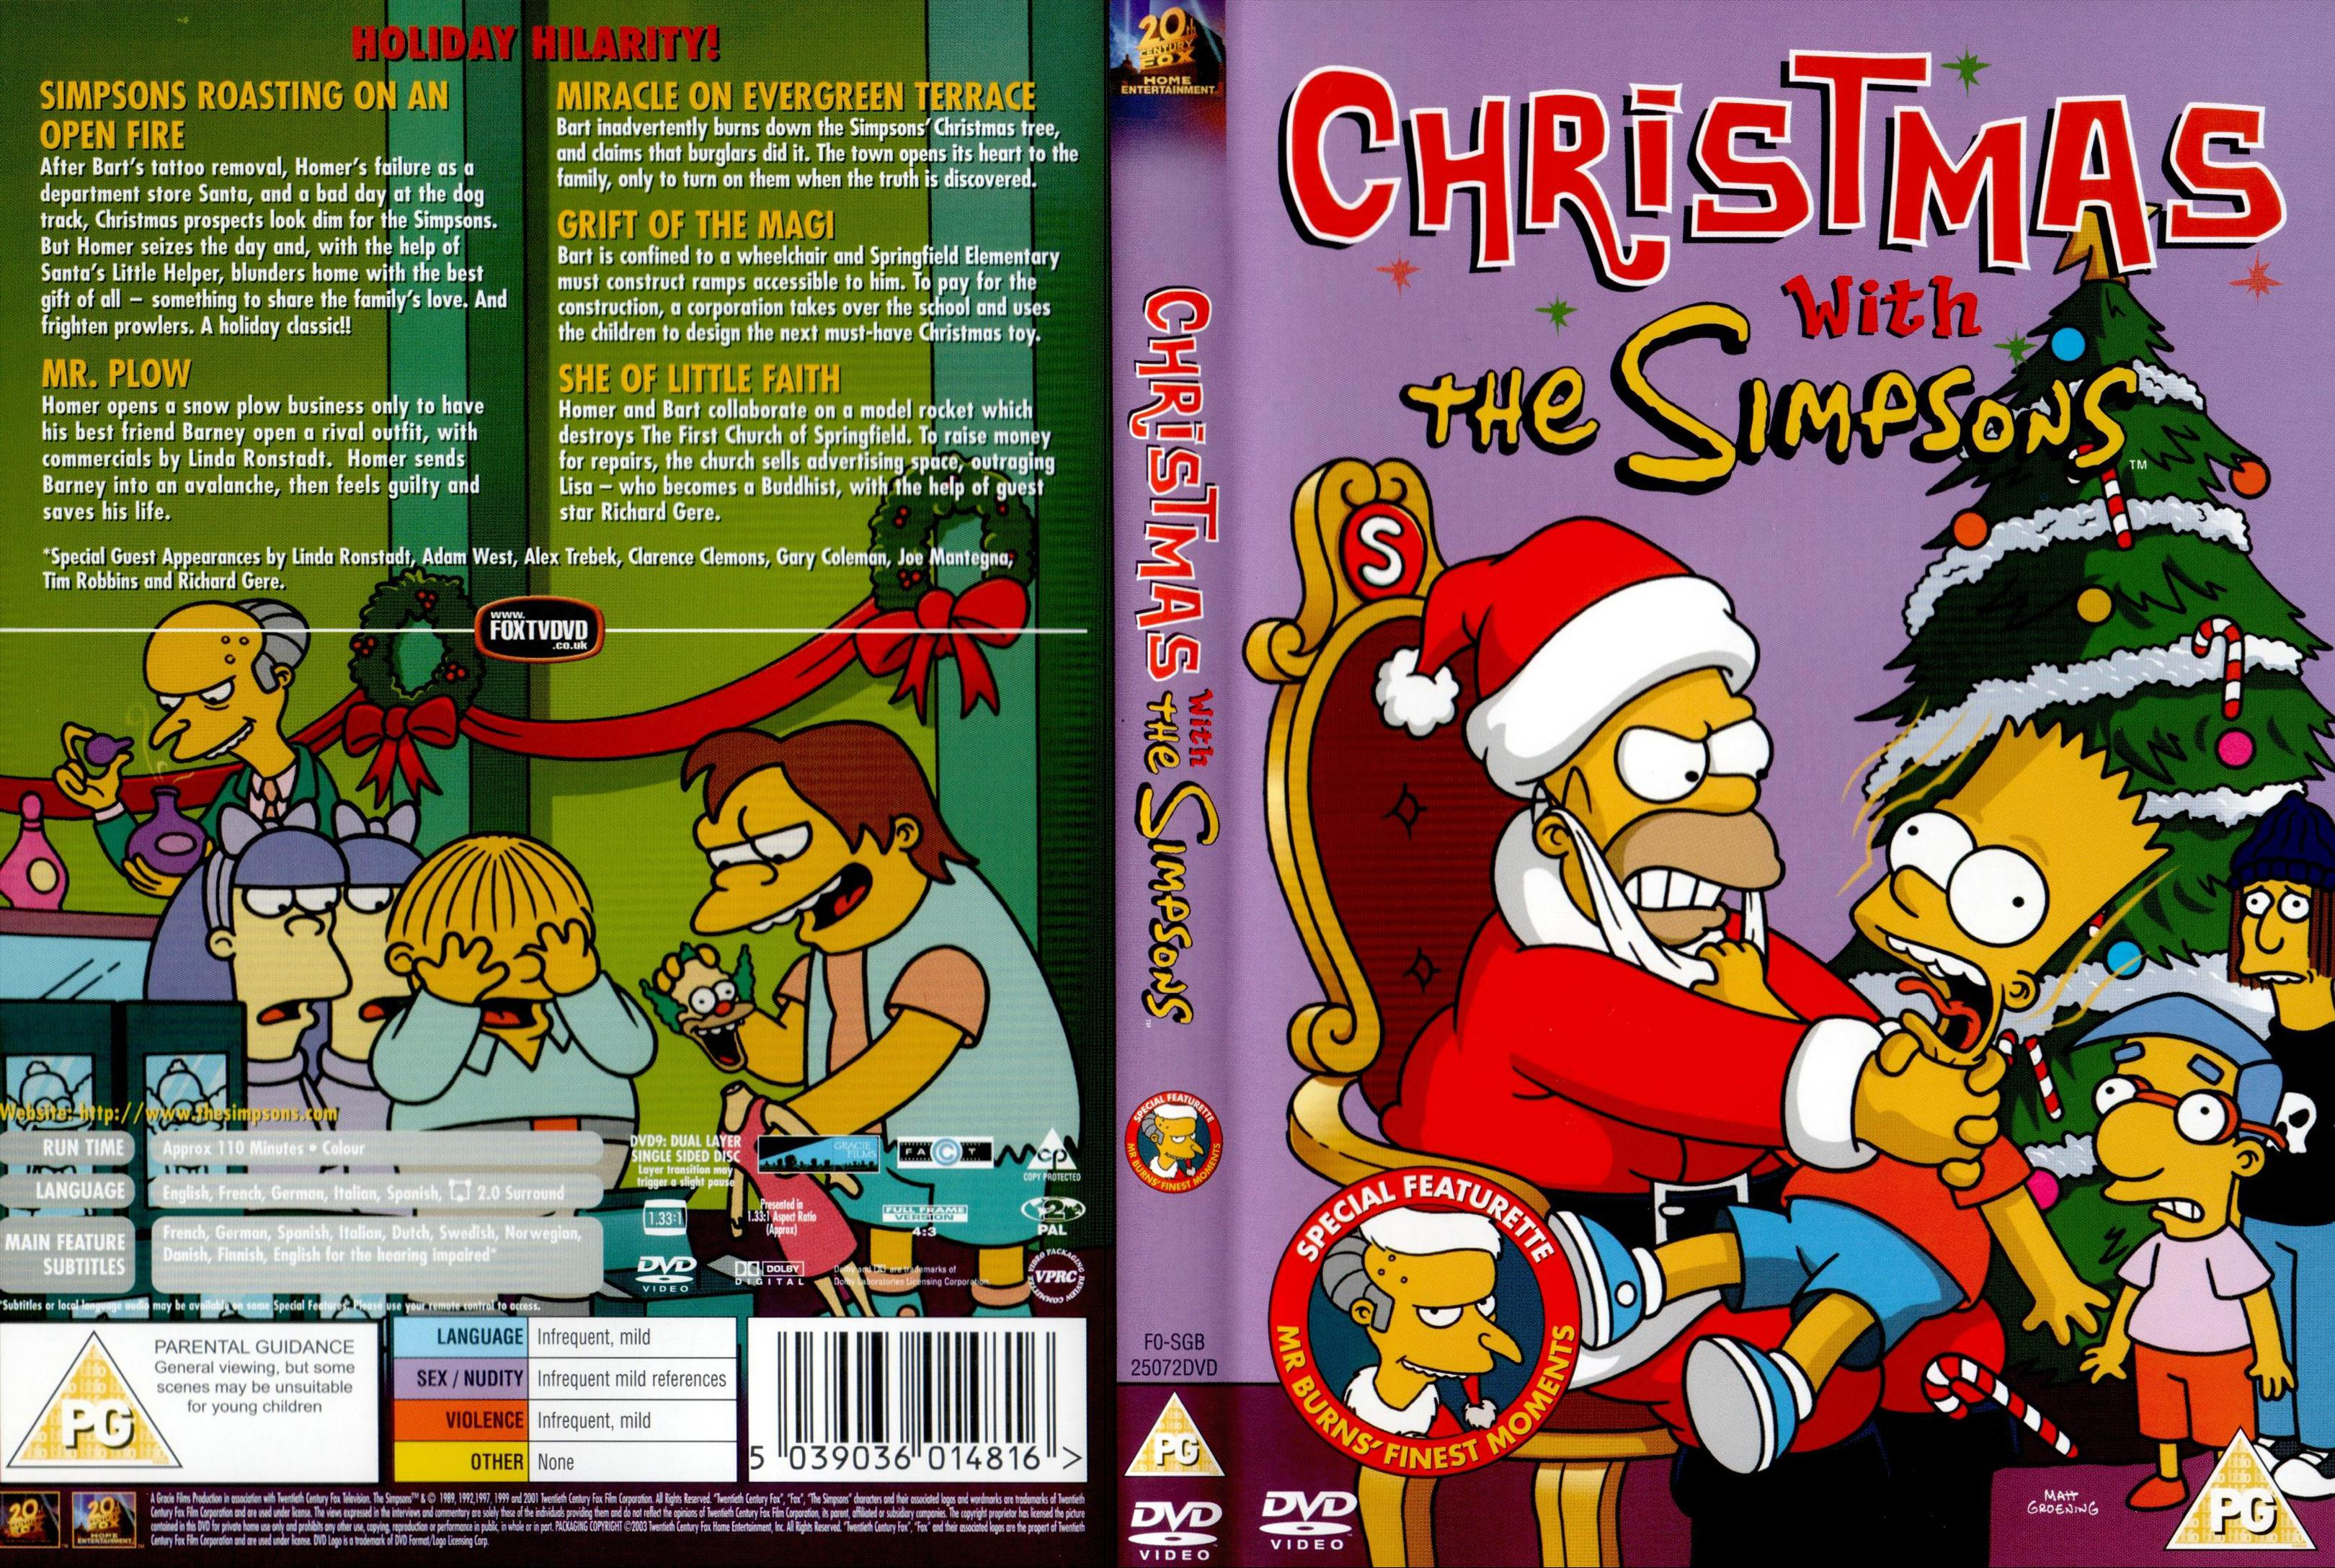 The Simpsons Christmas Dvd.Covers Box Sk Christmas With The Simpsons High Quality